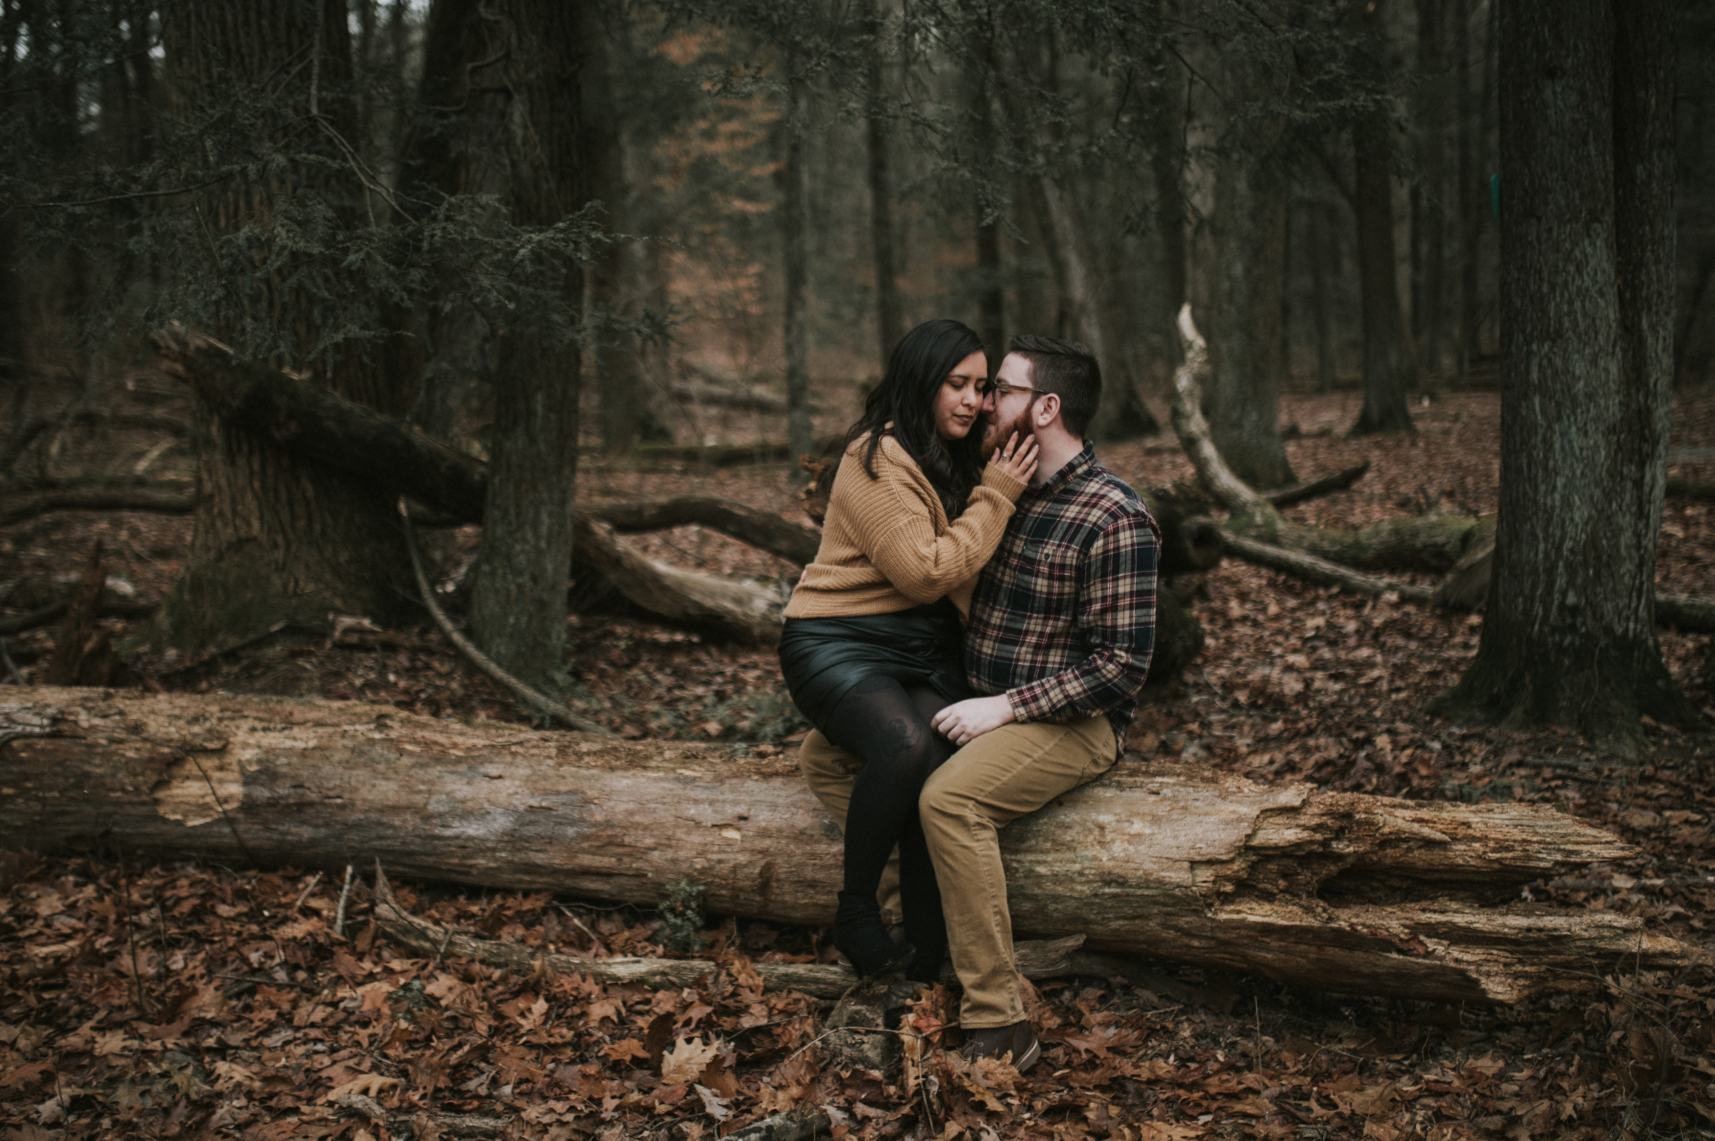 matt-natalia-winter-woods-engagement-session-pennsylvania-wedding-photographer-15